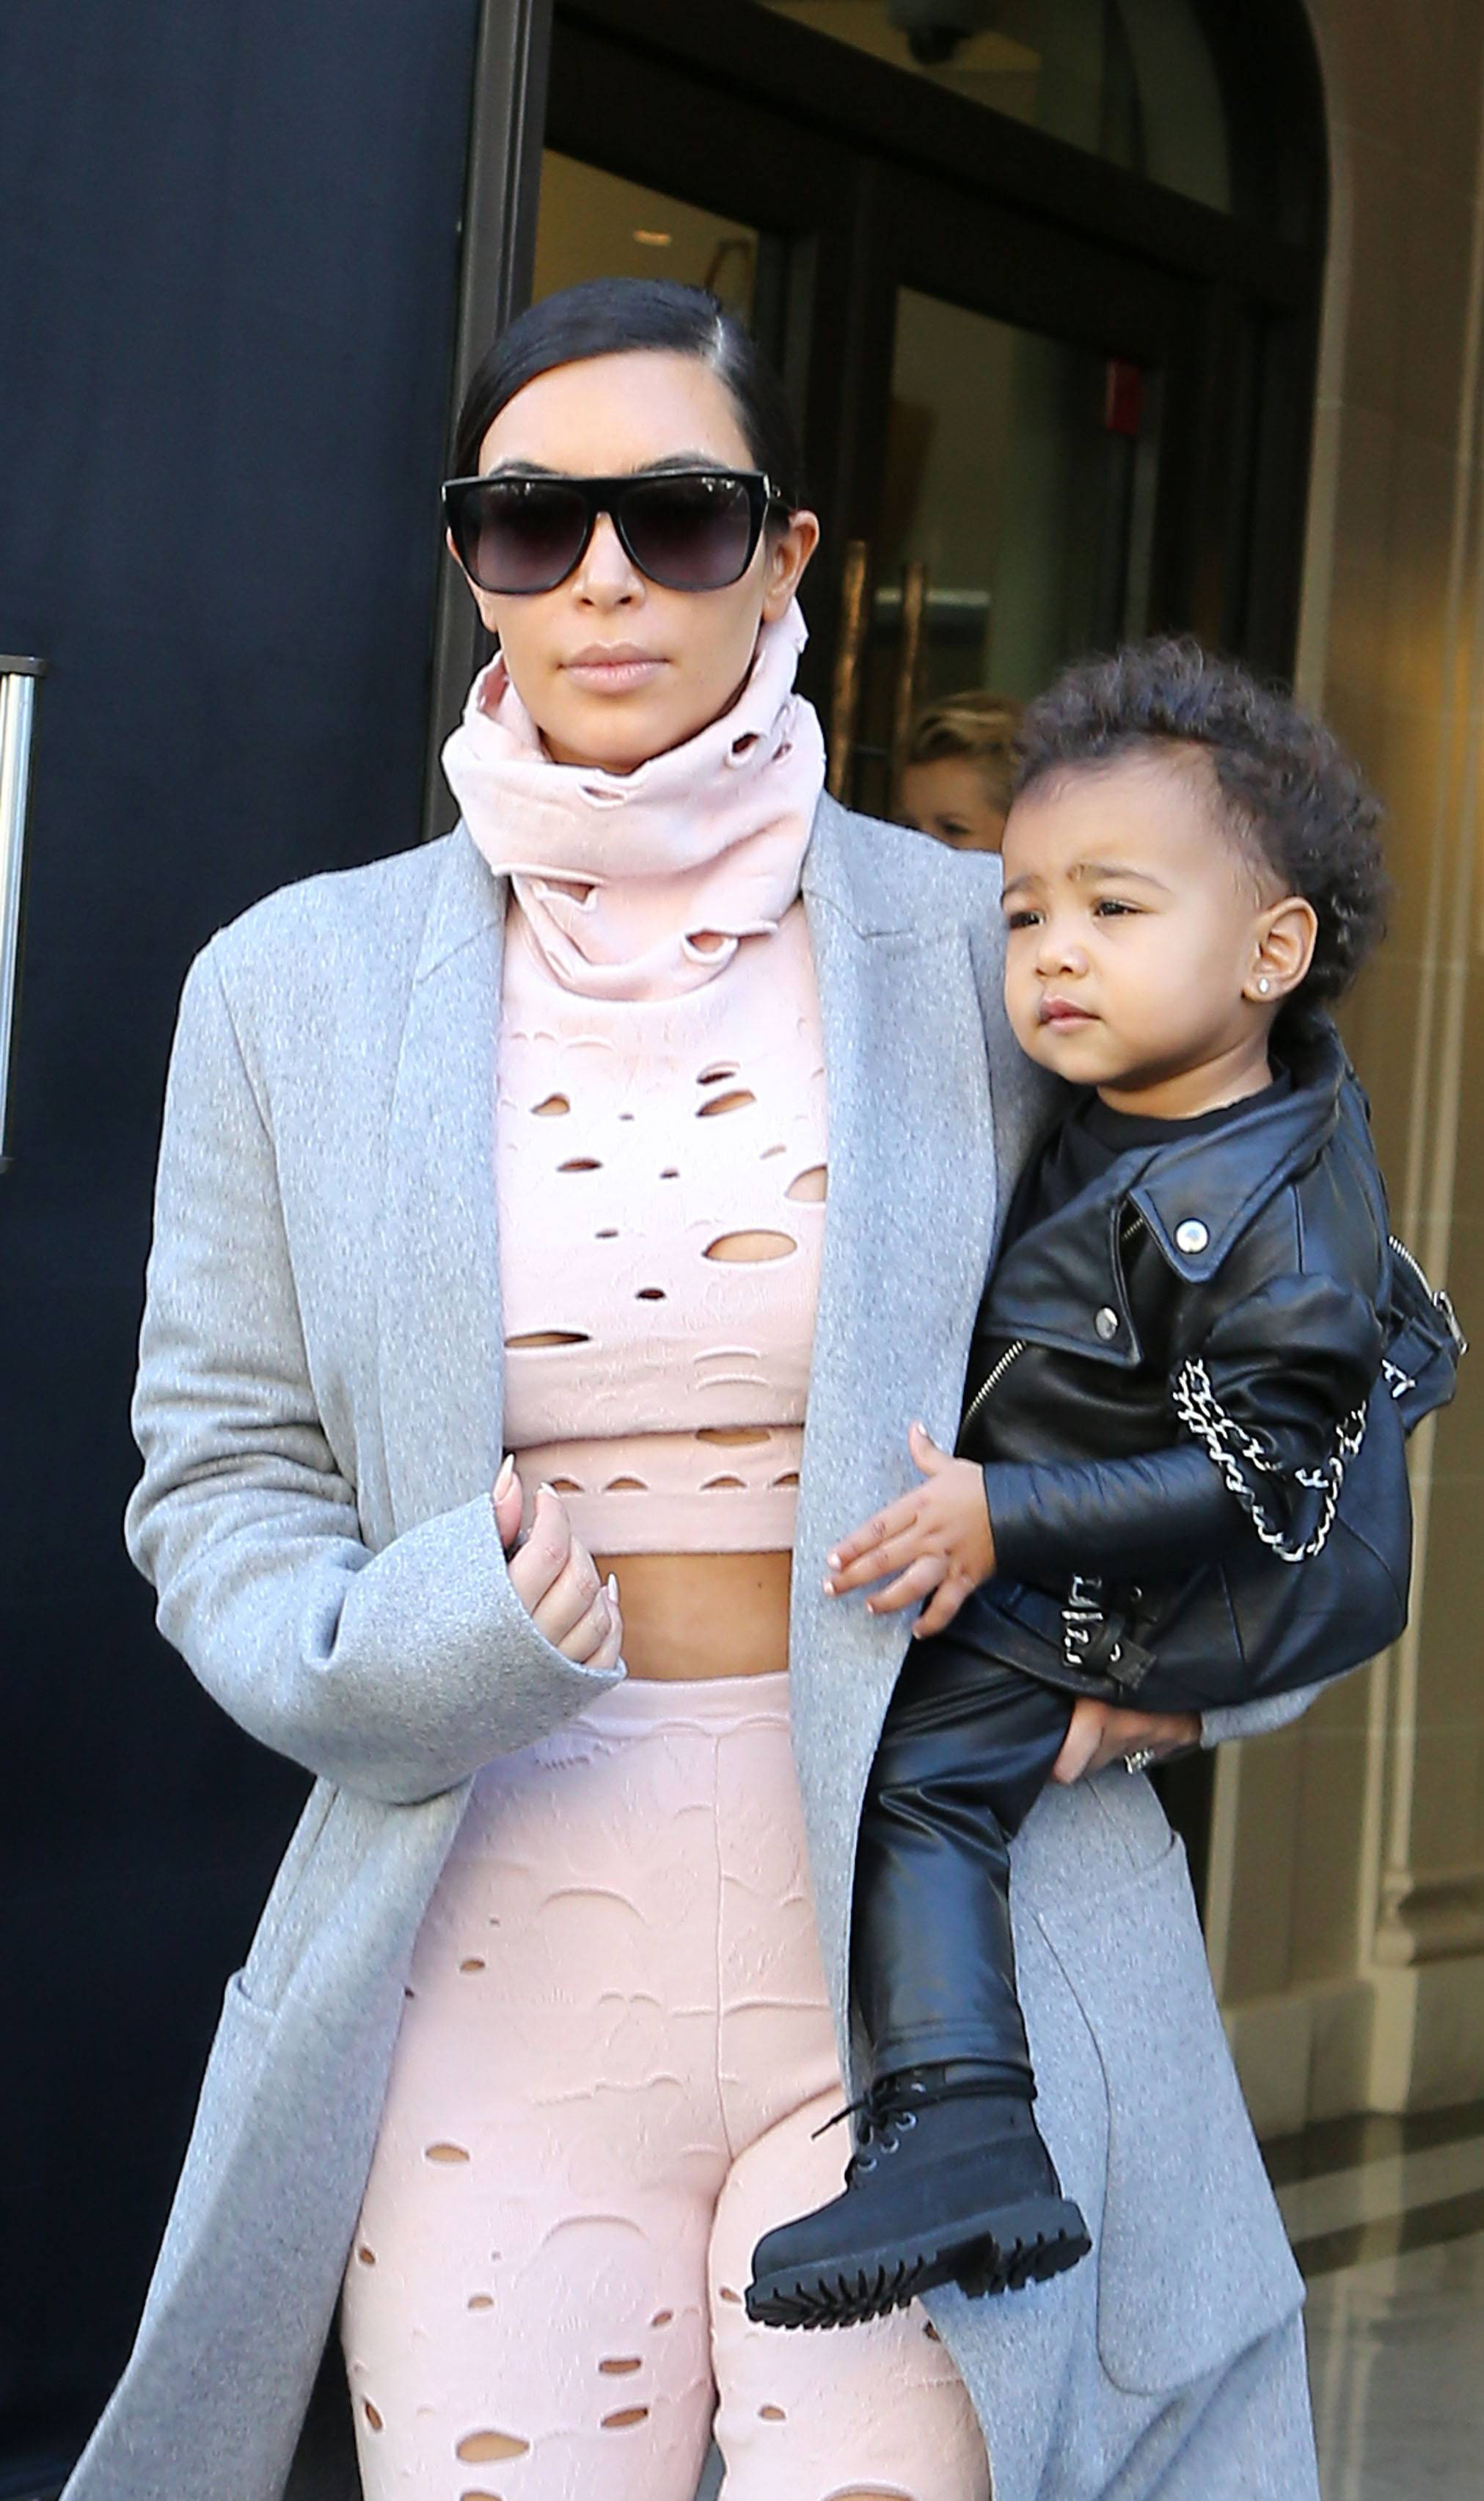 Kim Kardashian and North West at Paris Fashion Week - Kim Kardashian was spotted leaving her hotel in Paris with her daughter,North West, Wednesday. Kim, North, Kanye and Kris Jenner had been attending Paris Fashion Week for the past few days but North West was the real star of the show. She's just over one and is already a little fashionista. How cute is she in her baby biker jacket (pictured above)? Yaaaassssss!   (Photo: KCS Presse/Splash News)